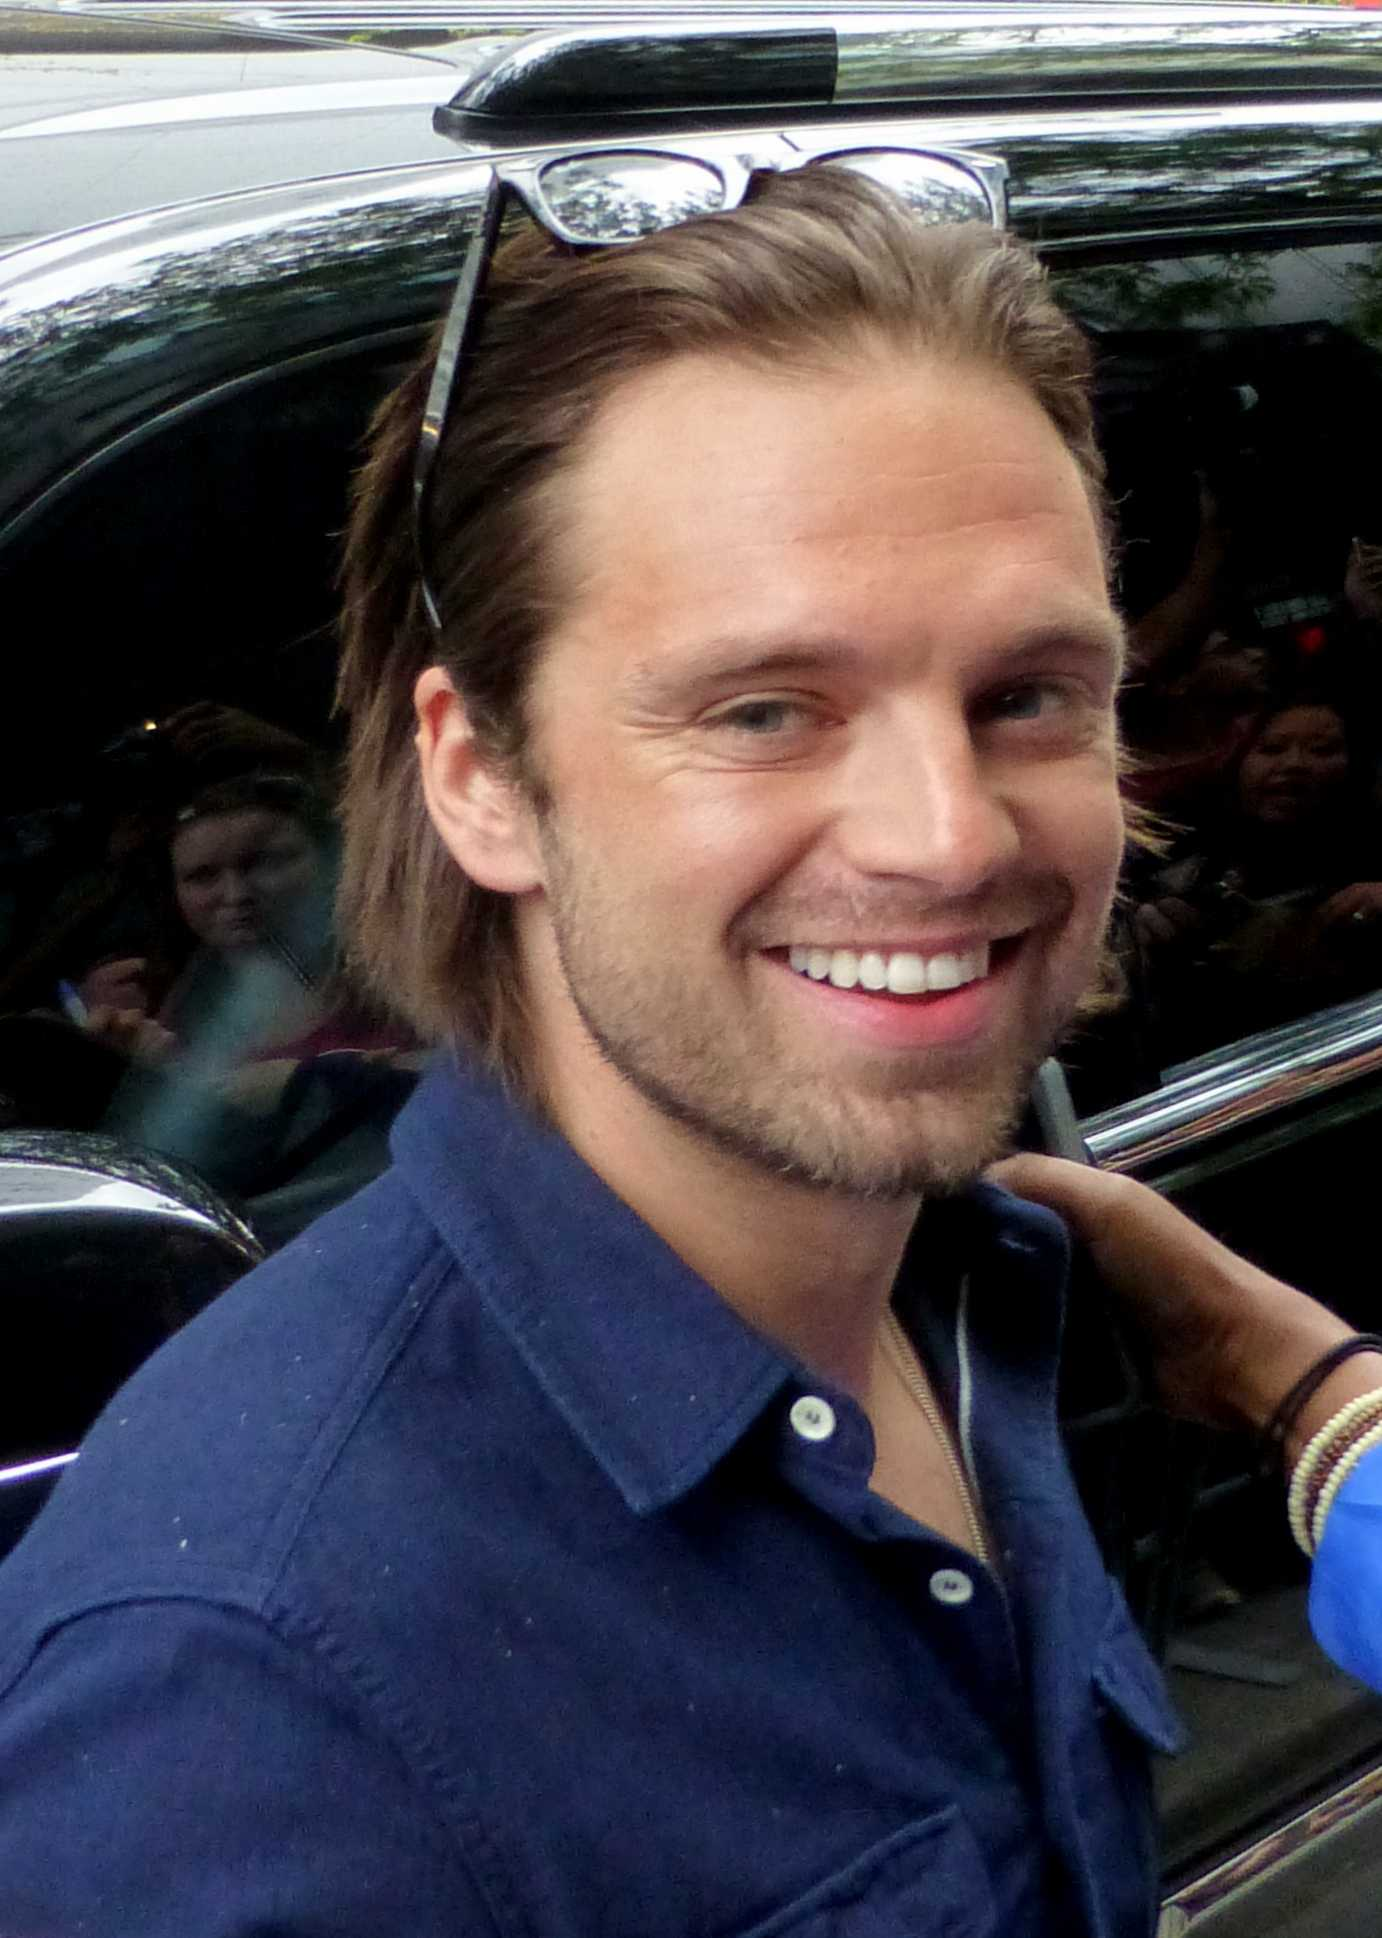 Sebastian Stan, pictured here at the 2015 Toronto Film Festival, stars as the Winter Soldier in